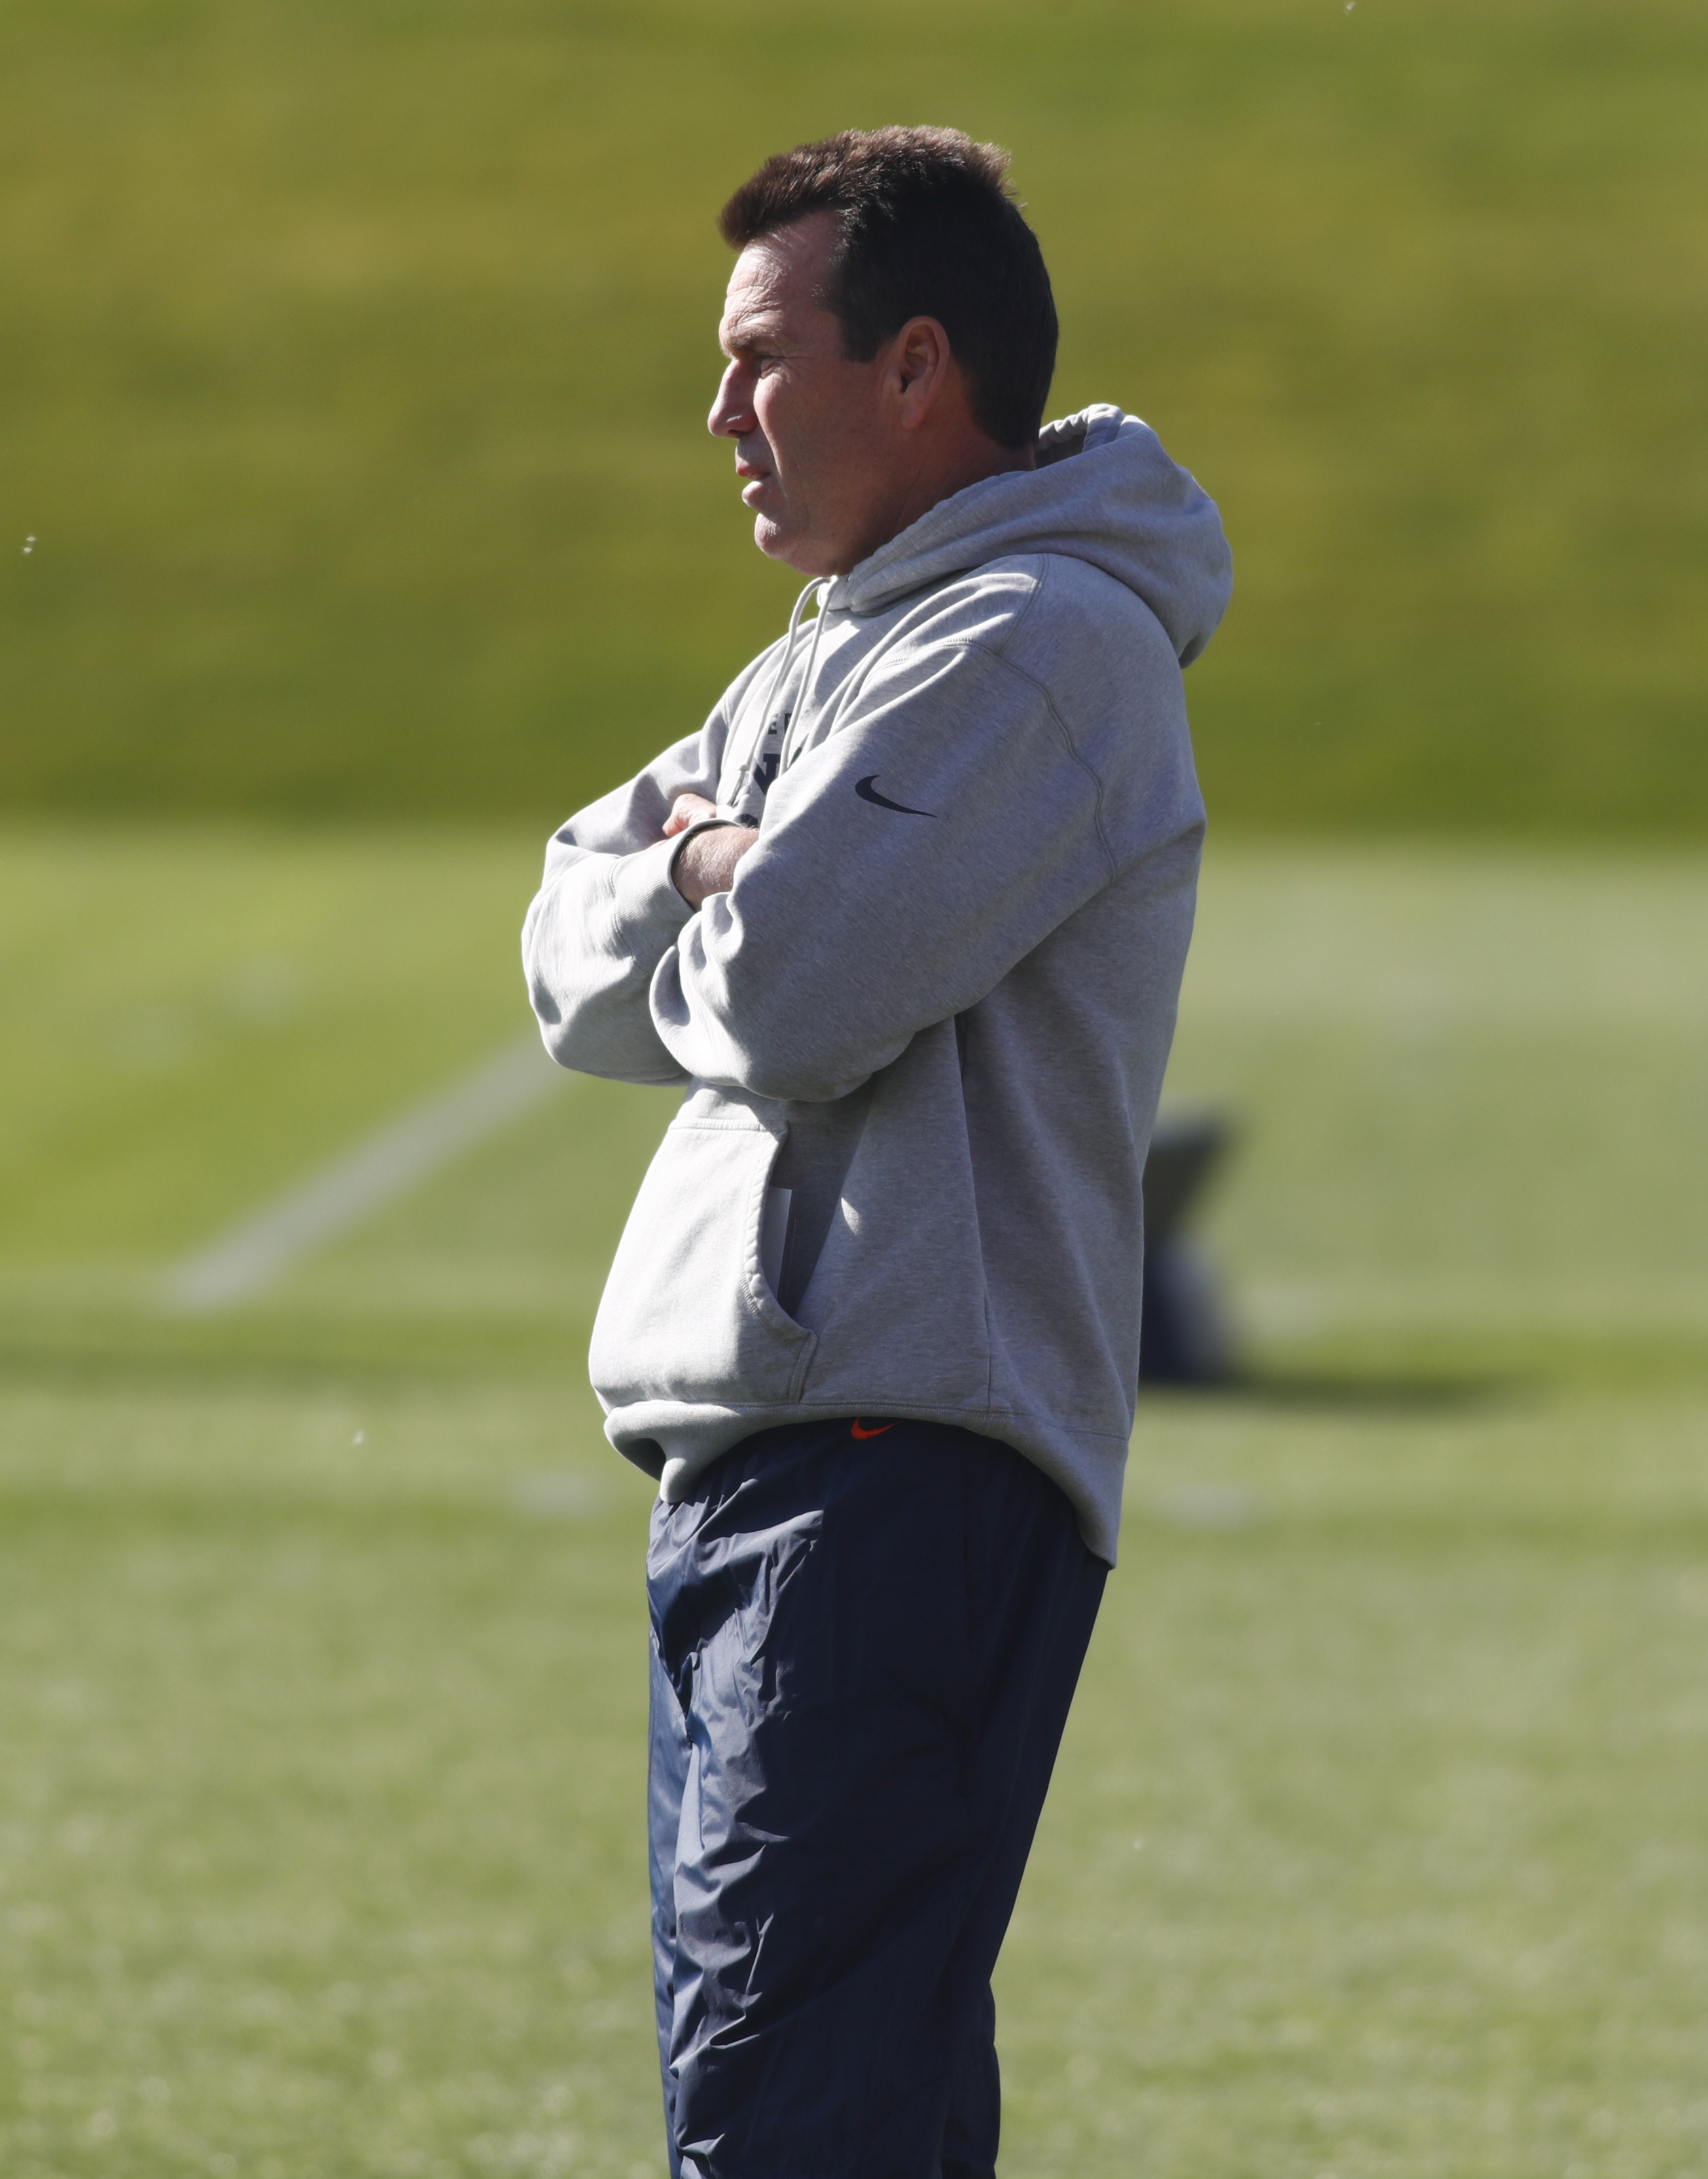 Denver Broncos head coach Gary Kubiak looks on during the team's practice, Monday, Oct. 17, 2016, in Englewood, Colo. (AP Photo/David Zalubowski)